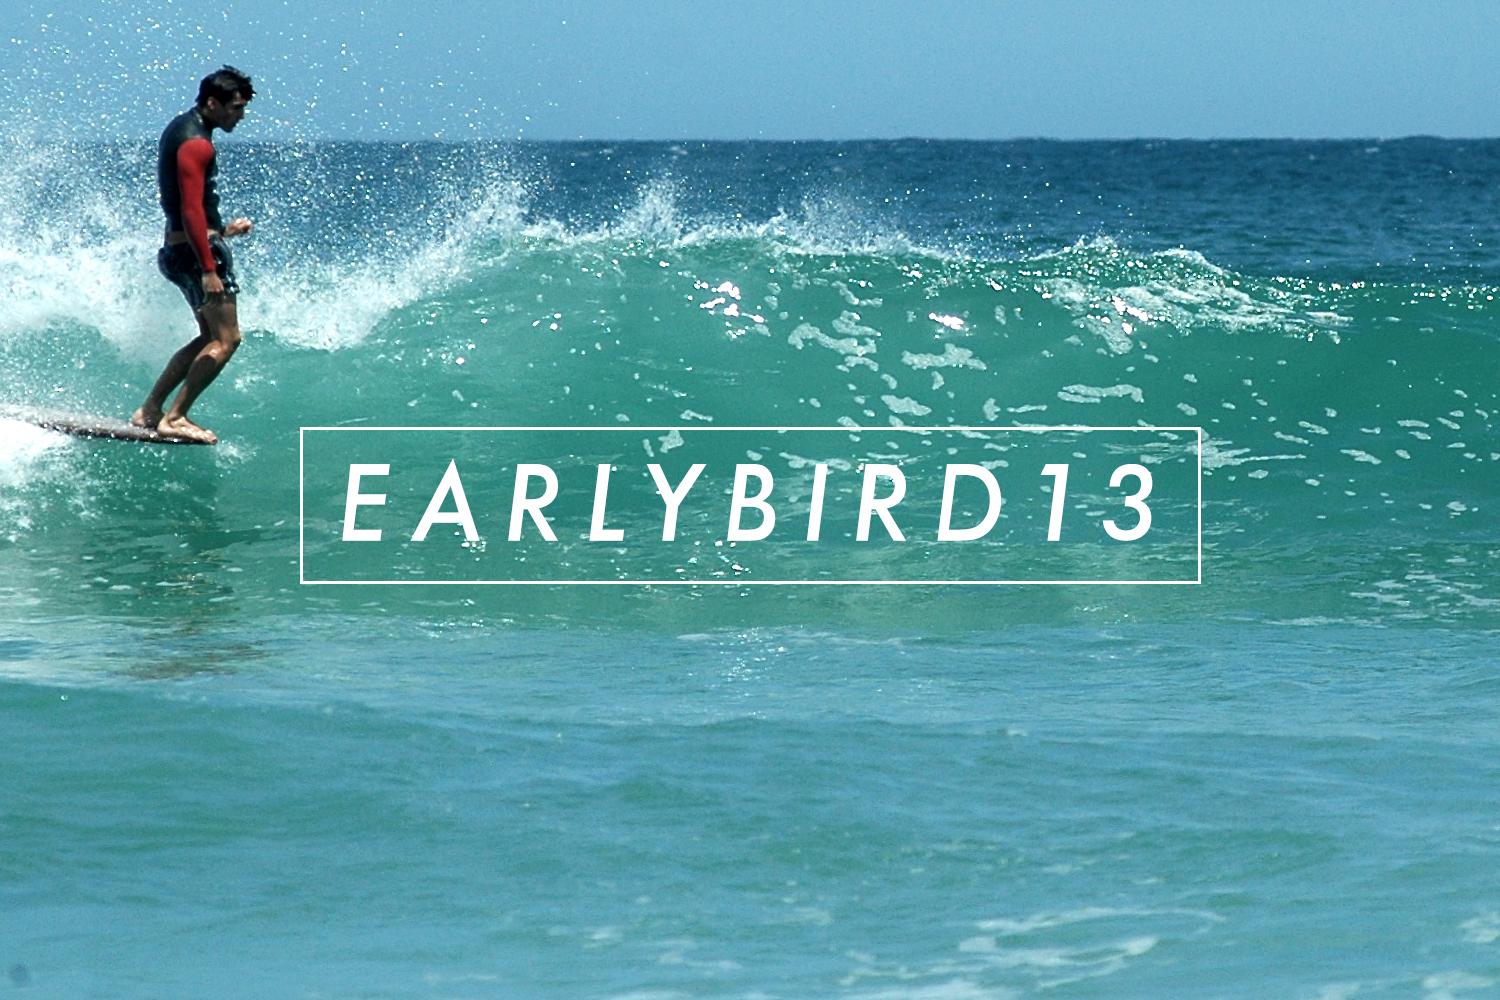 early_bird_13